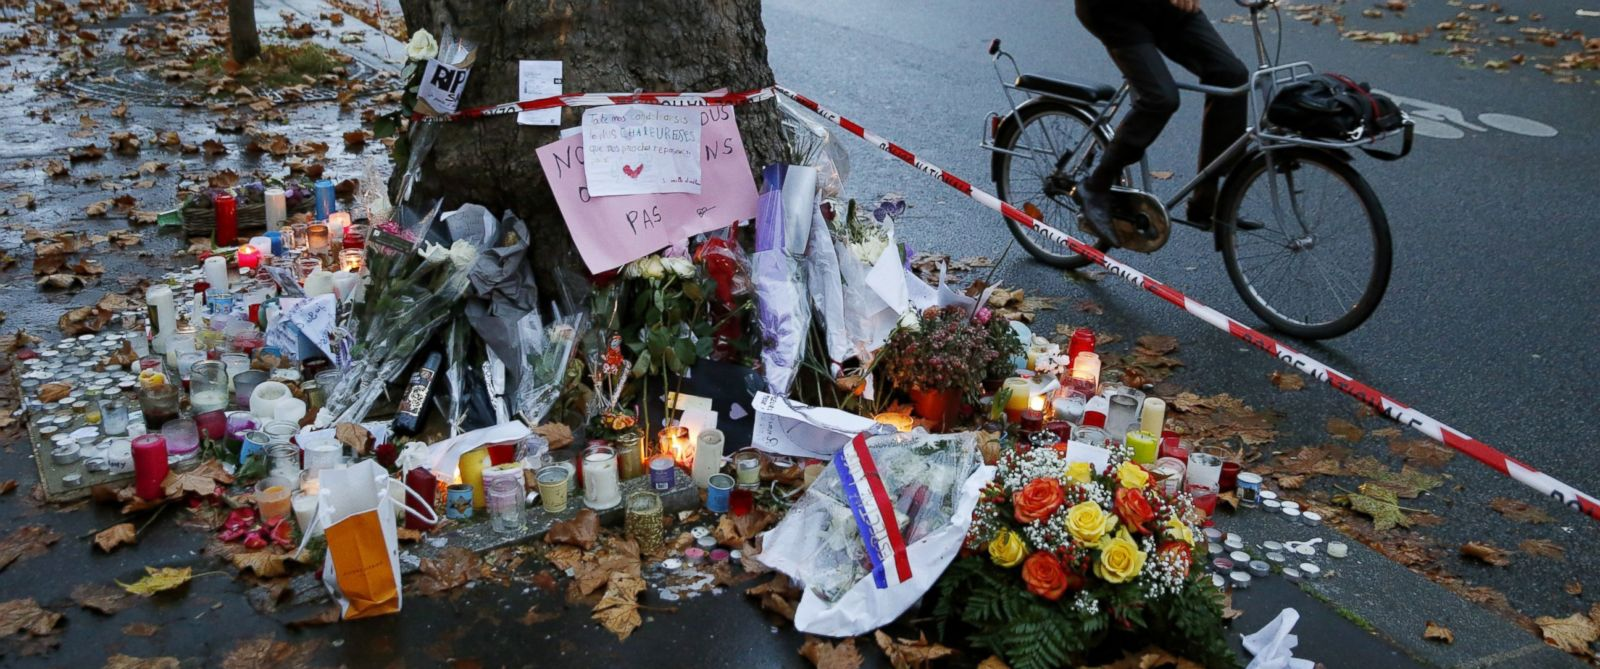 PHOTO: A cyclist pauses to look at candles and floral tributes to victims of the attacks at the Bataclan Theater in Paris on Nov. 17, 2015, where at least 82 people were killed.